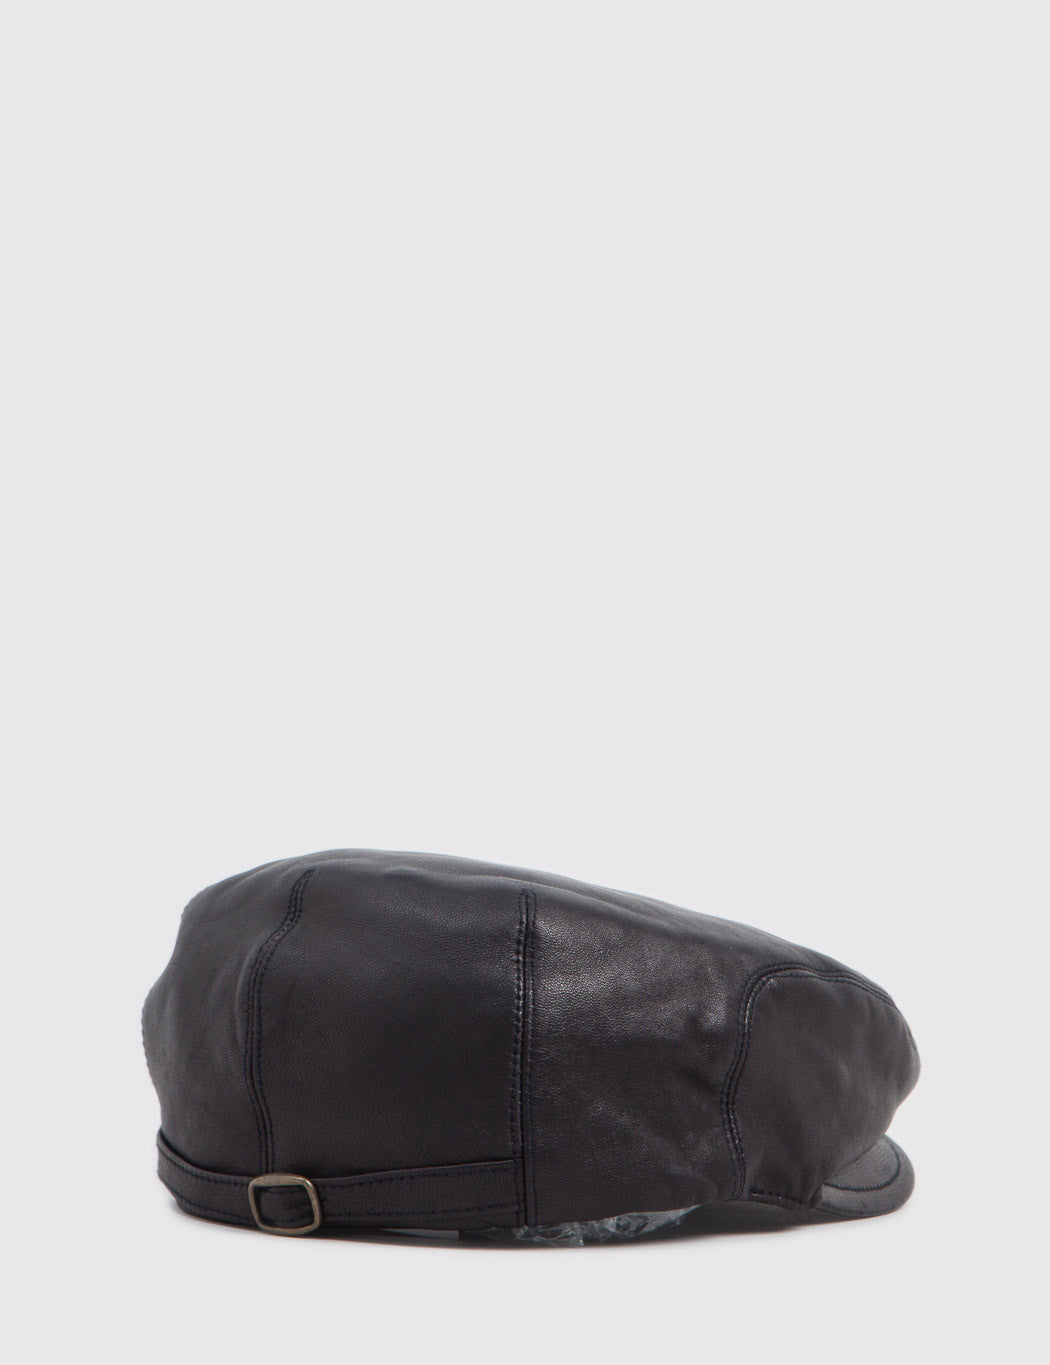 Bailey Stockton Leather Flat Cap - Black